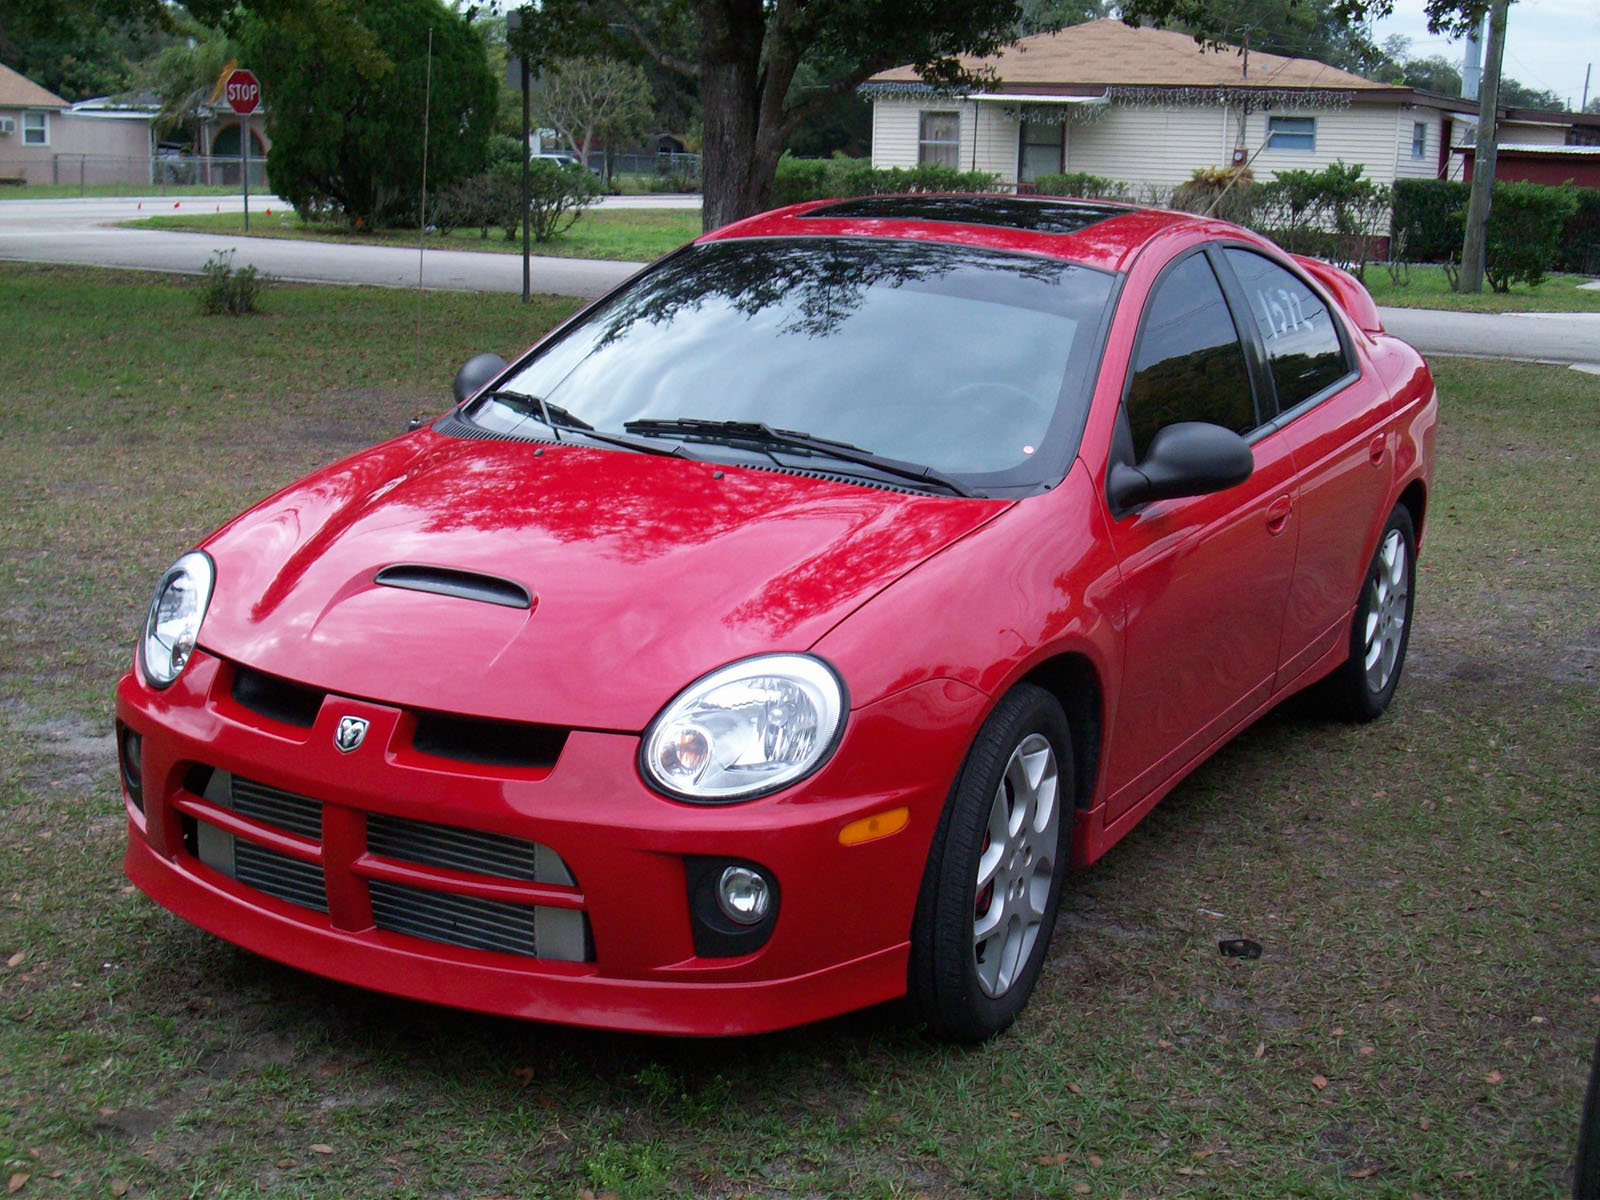 2005 dodge neon srt 4 1 4 mile drag racing timeslip specs 0 60. Black Bedroom Furniture Sets. Home Design Ideas